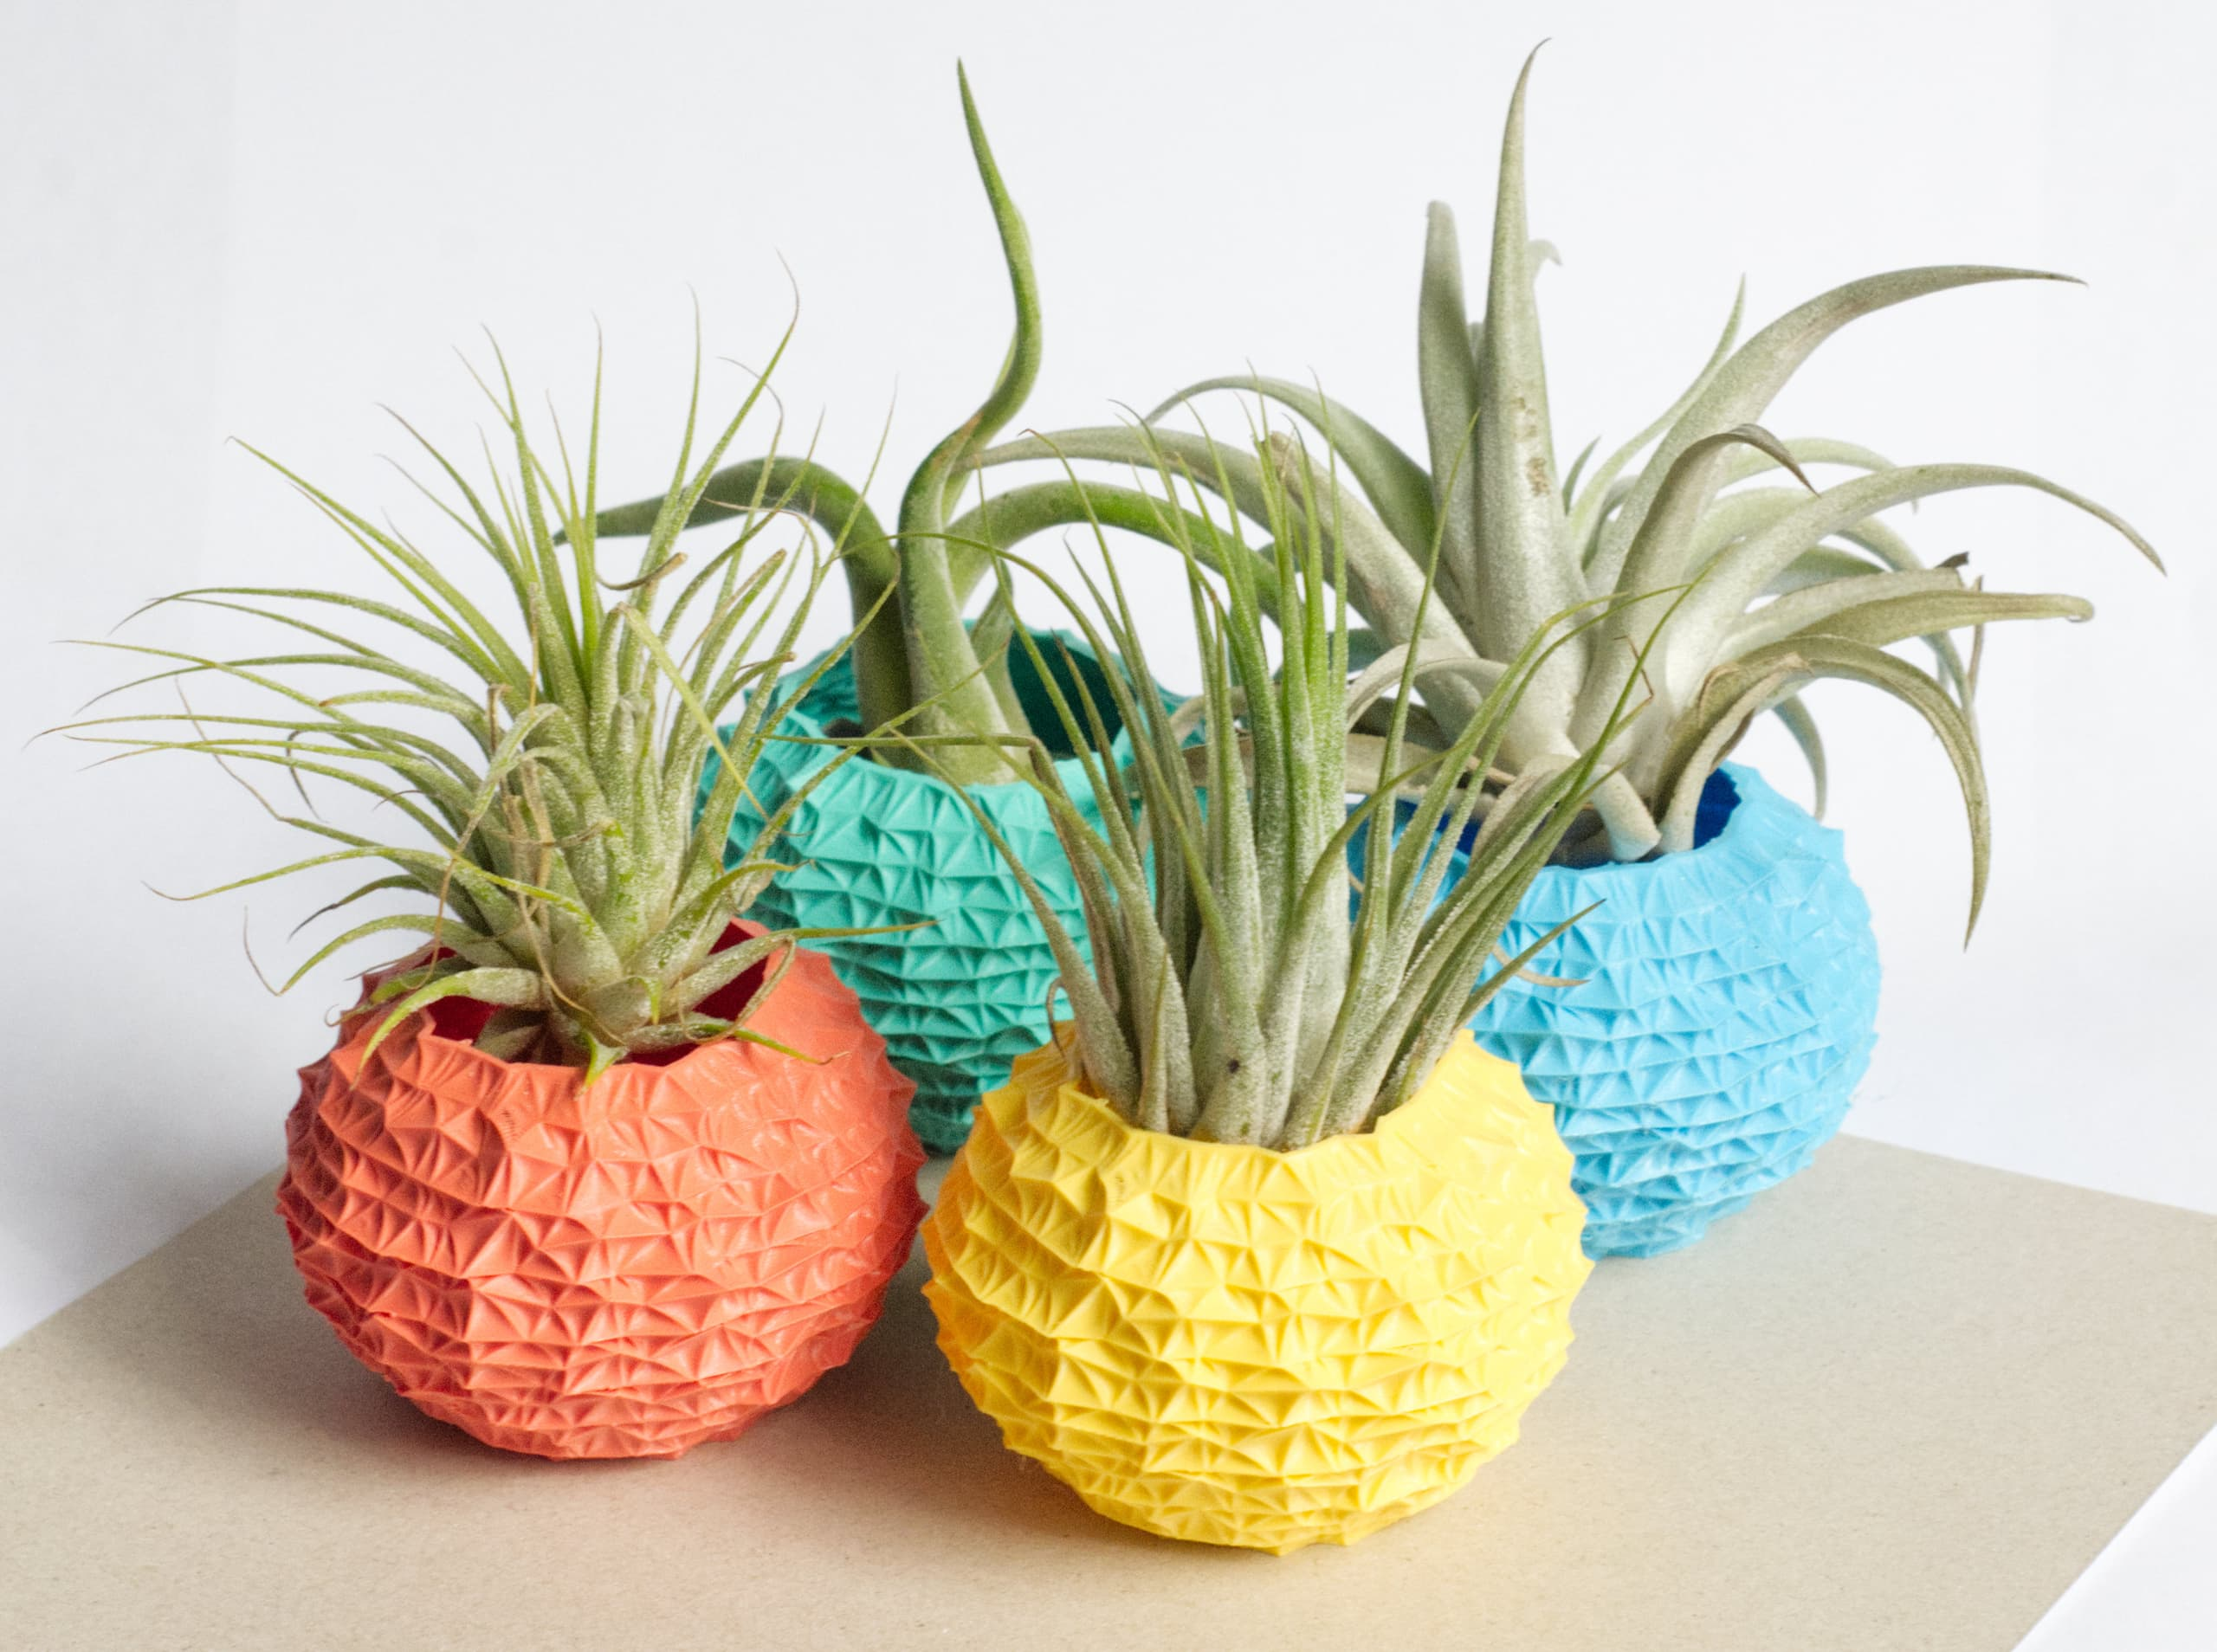 Four spiky, urchin-shaped plastic holders with air plants in various colors.